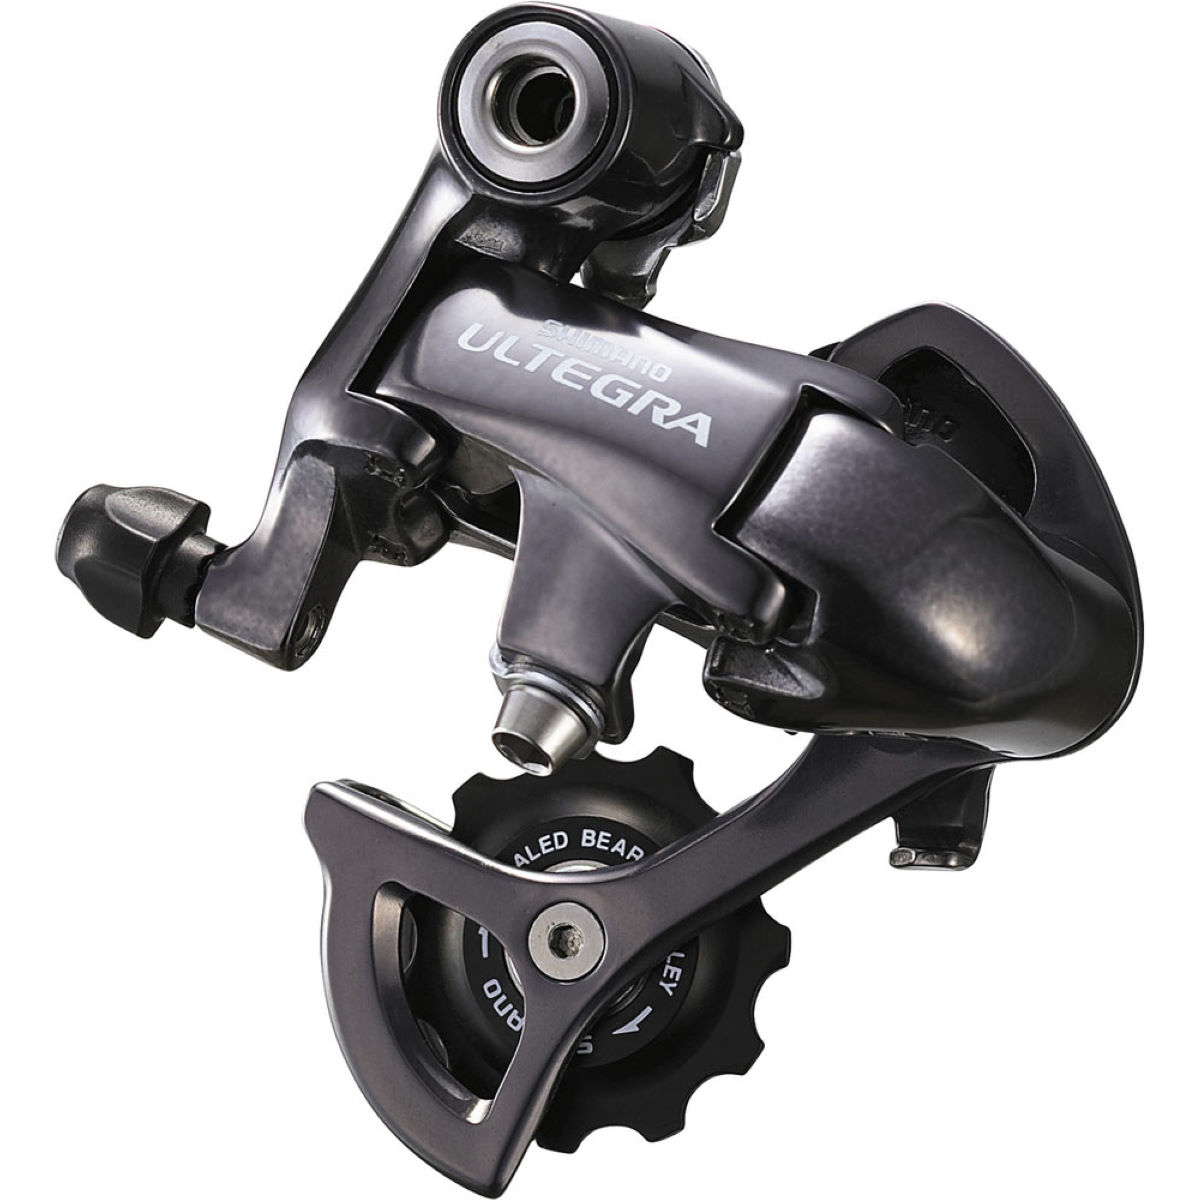 Shimano Ultegra SL 6600 8/9/10 Speed Rear Derailleur